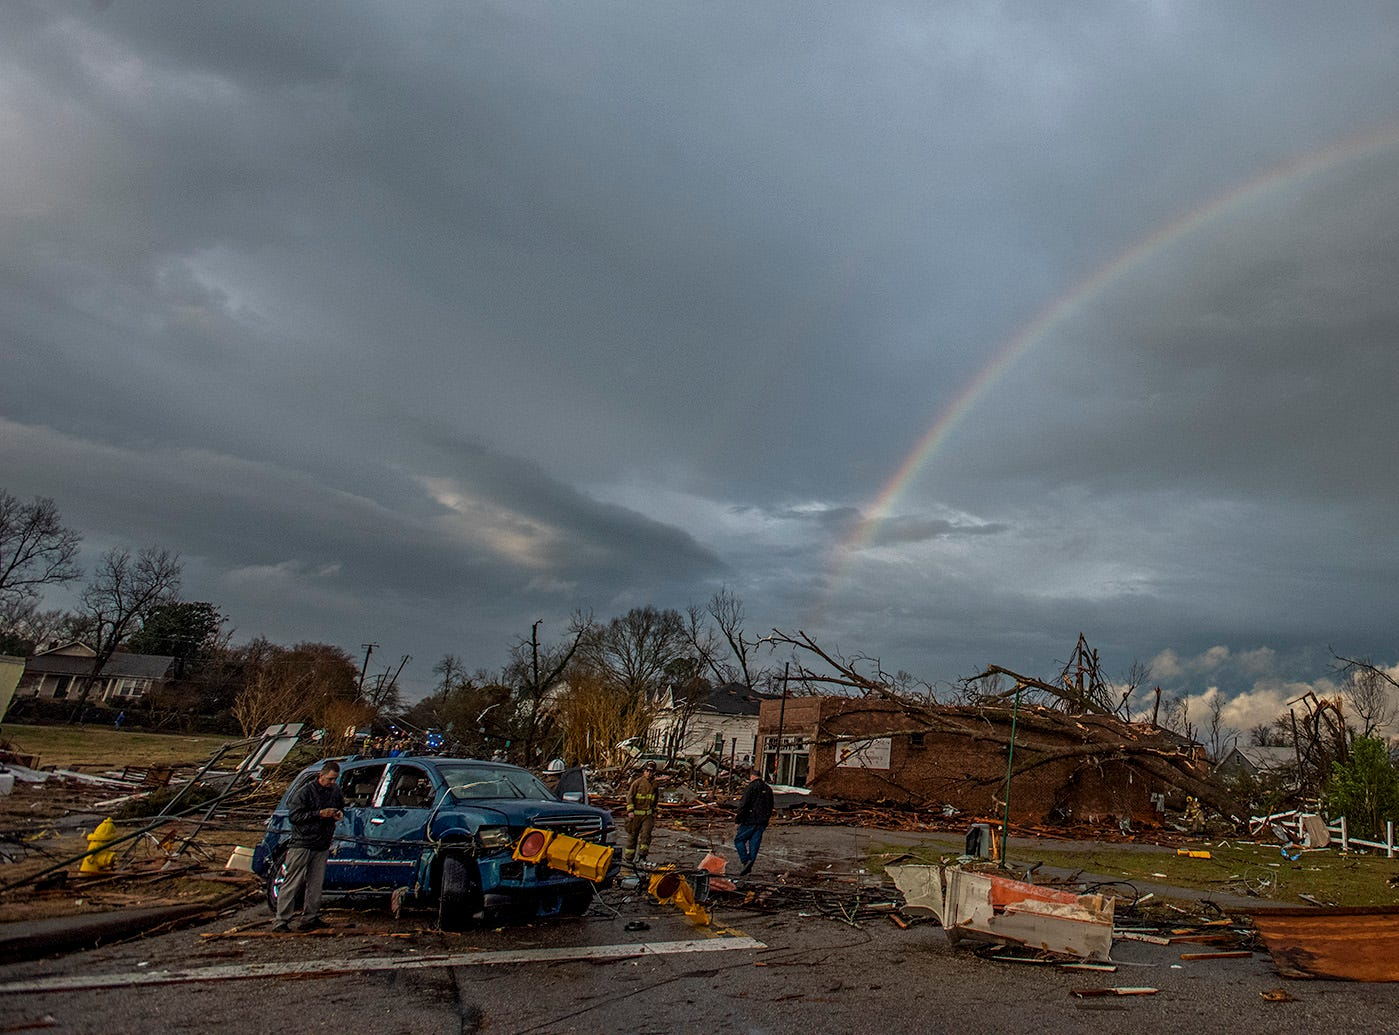 A rainbow over damage from a tornado touchdown in Wetumpka, Ala., on Saturday afternoon January 19, 2019.